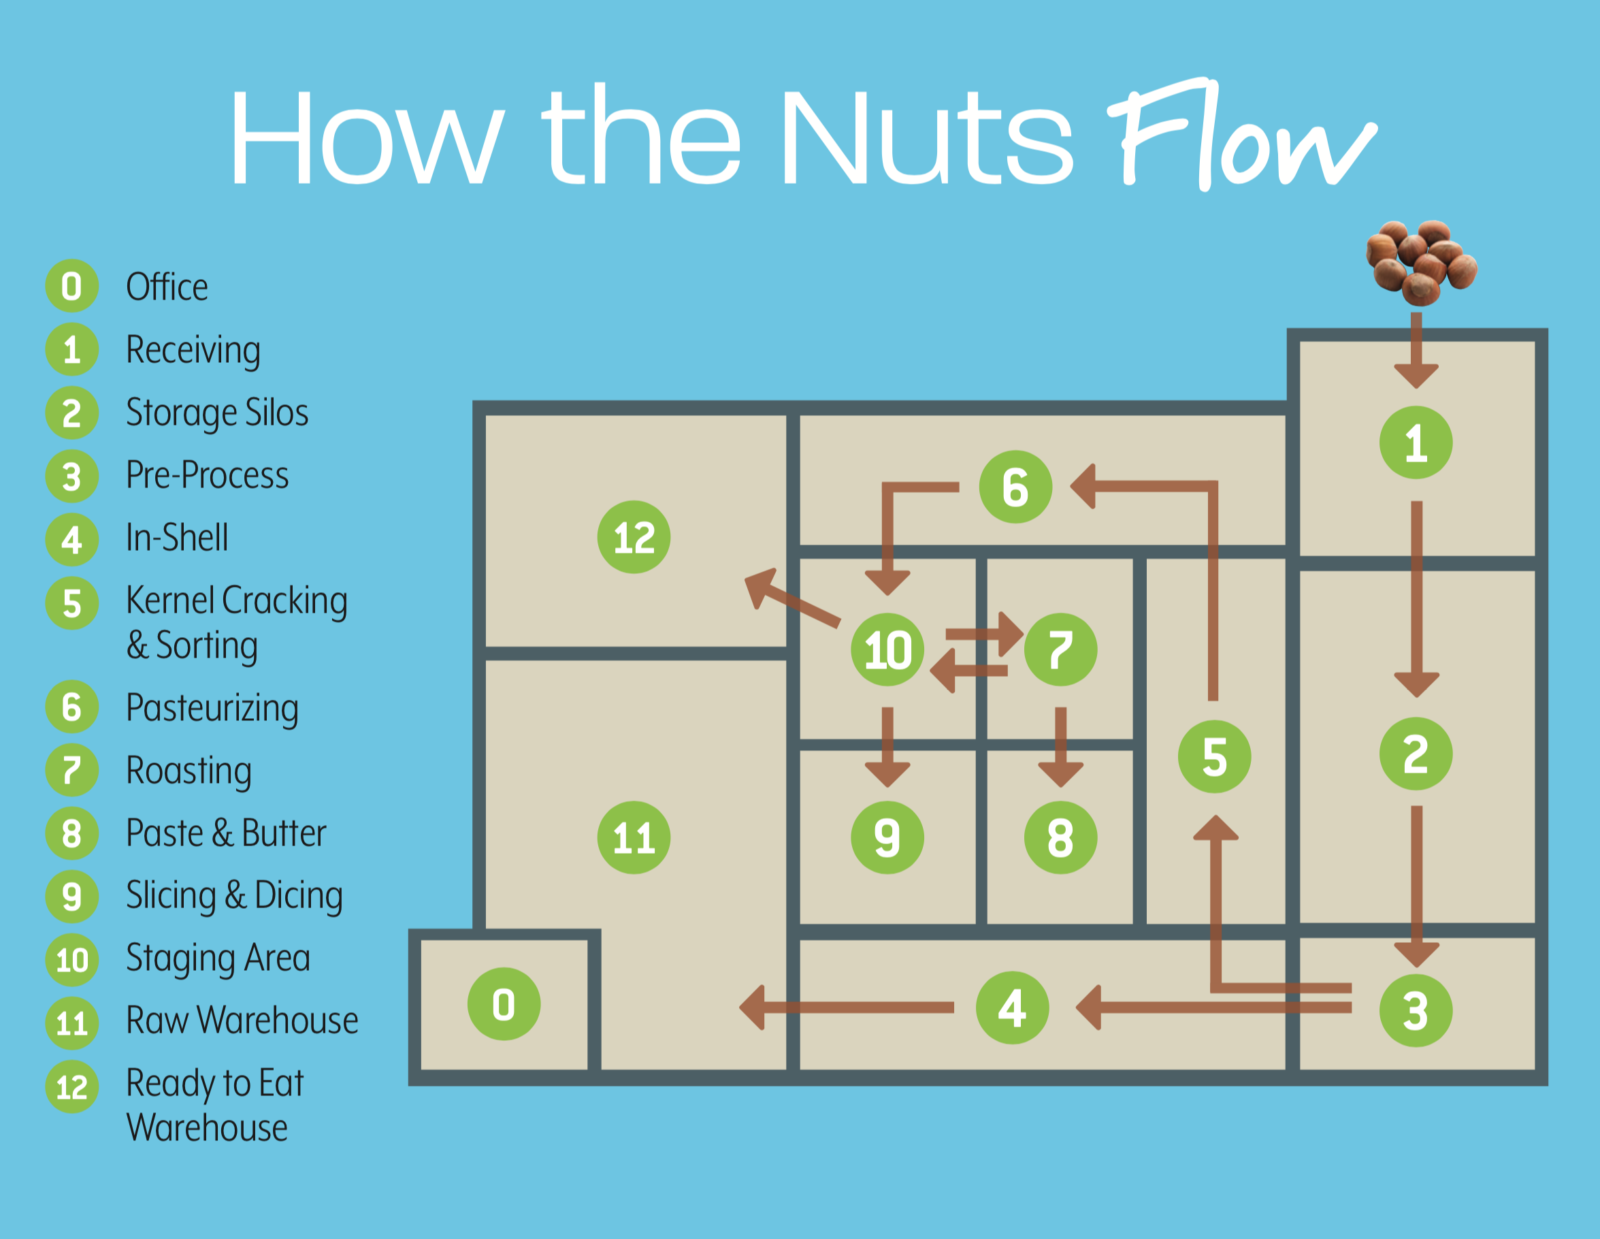 Detailed diagram of nut flow in processing facility